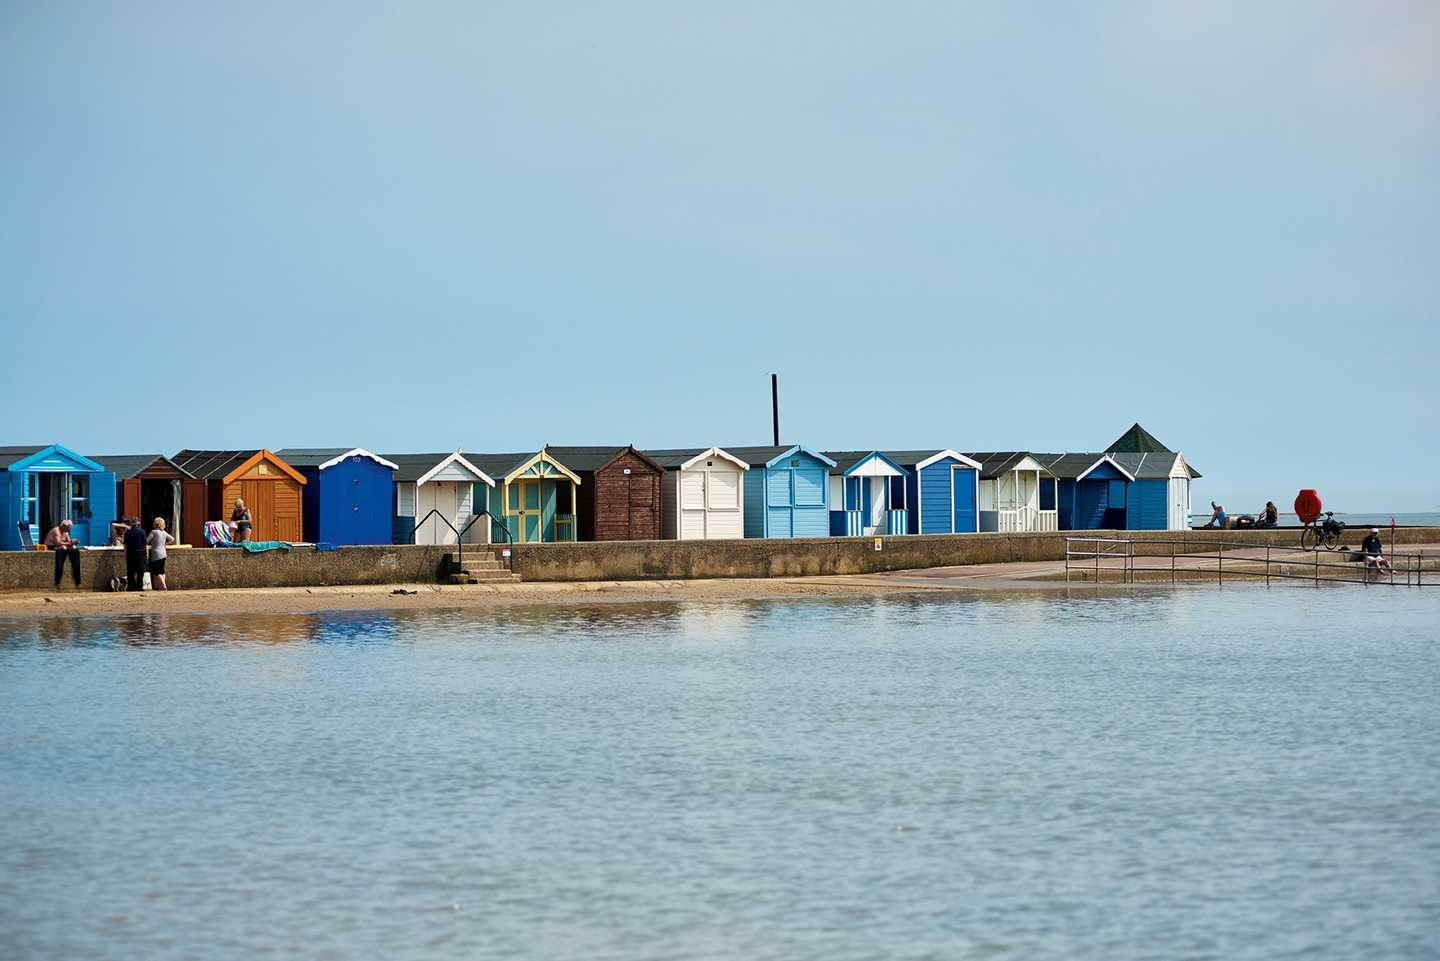 Brightlingsea, Essex